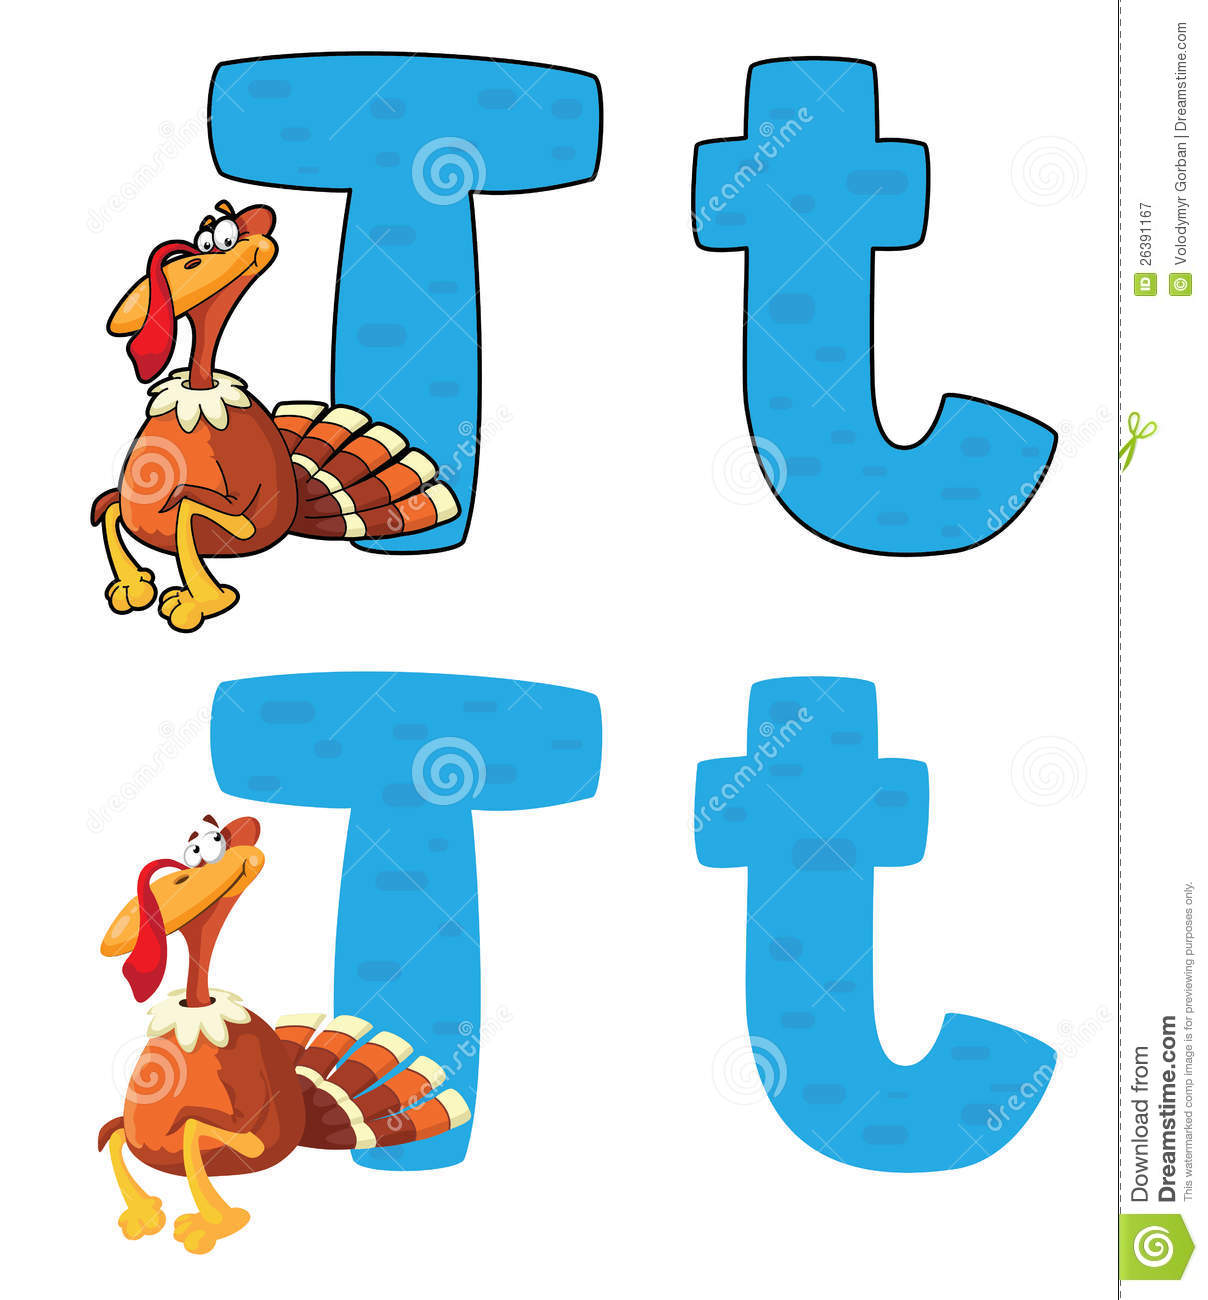 Letter T Turkey Royalty Free Stock Photography